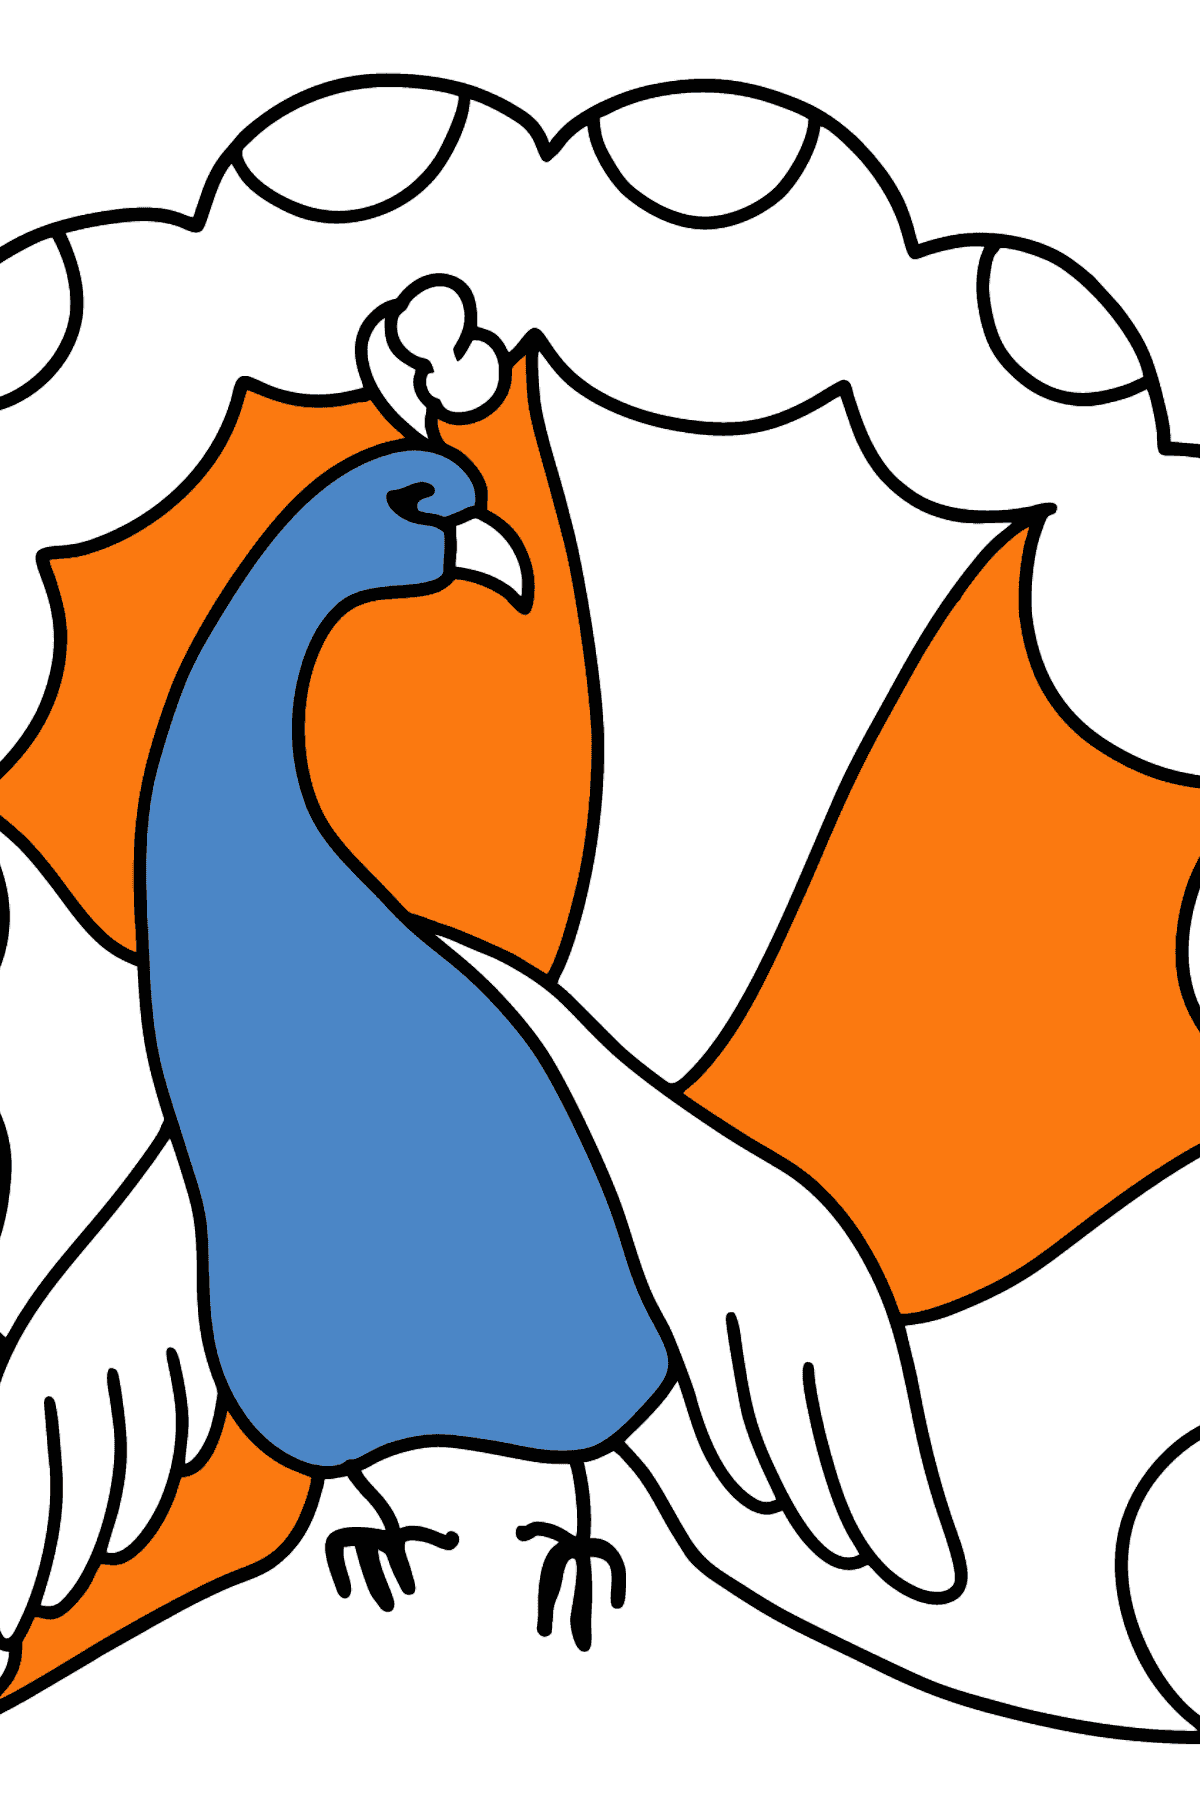 Peacock coloring page - Coloring Pages for Kids